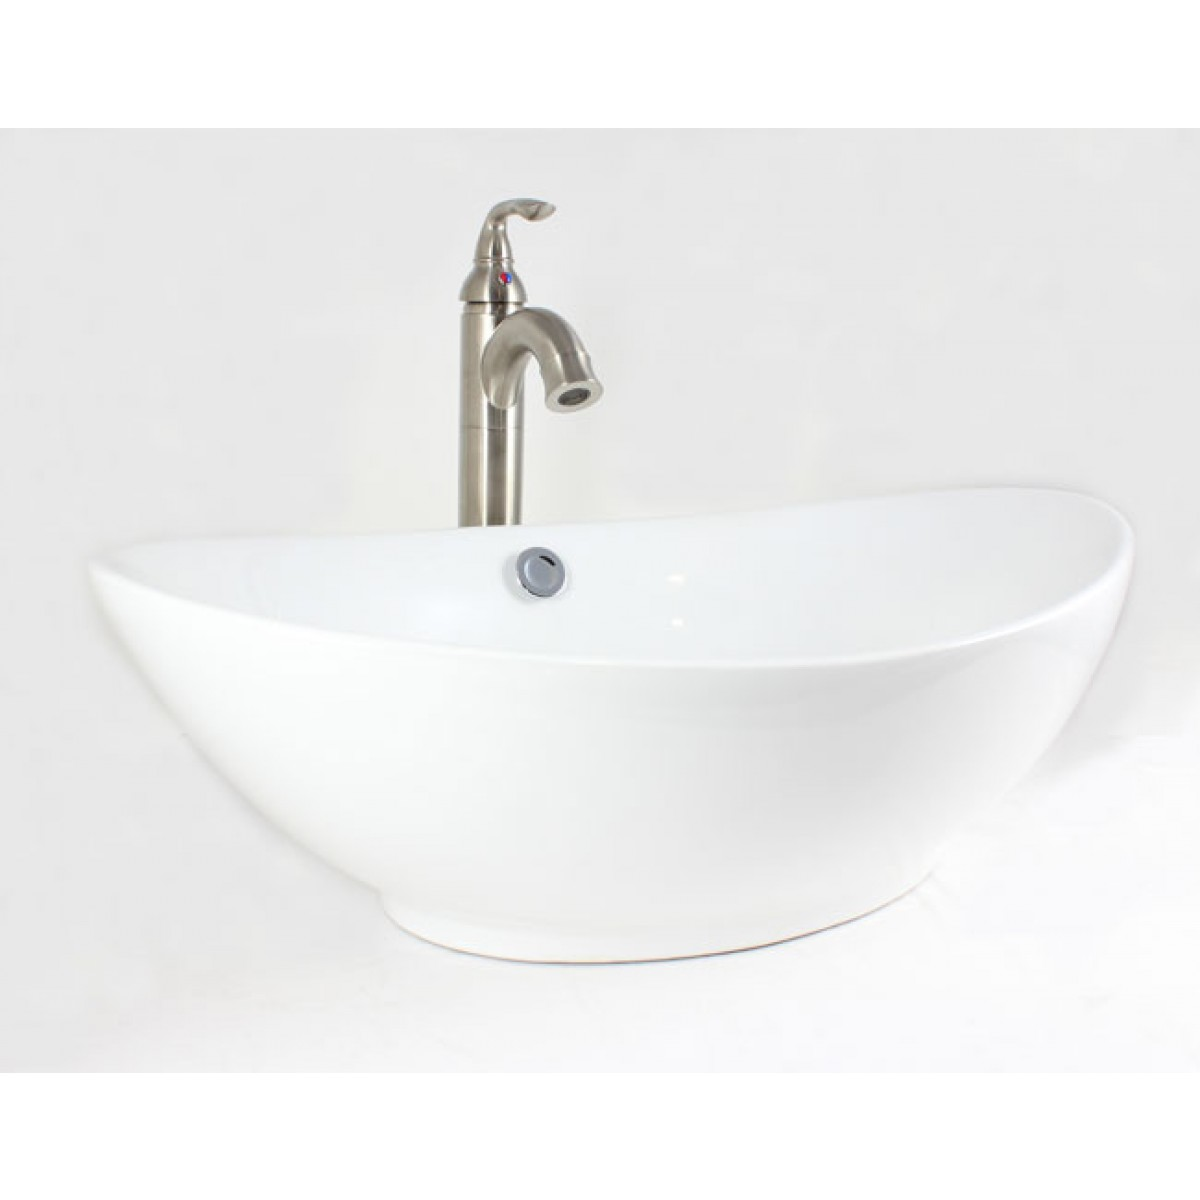 White / Biscuit / Black Porcelain Ceramic Countertop Bathroom Vessel Sink    23 1/4 X 15 1/4 X 7 1/2 Inch